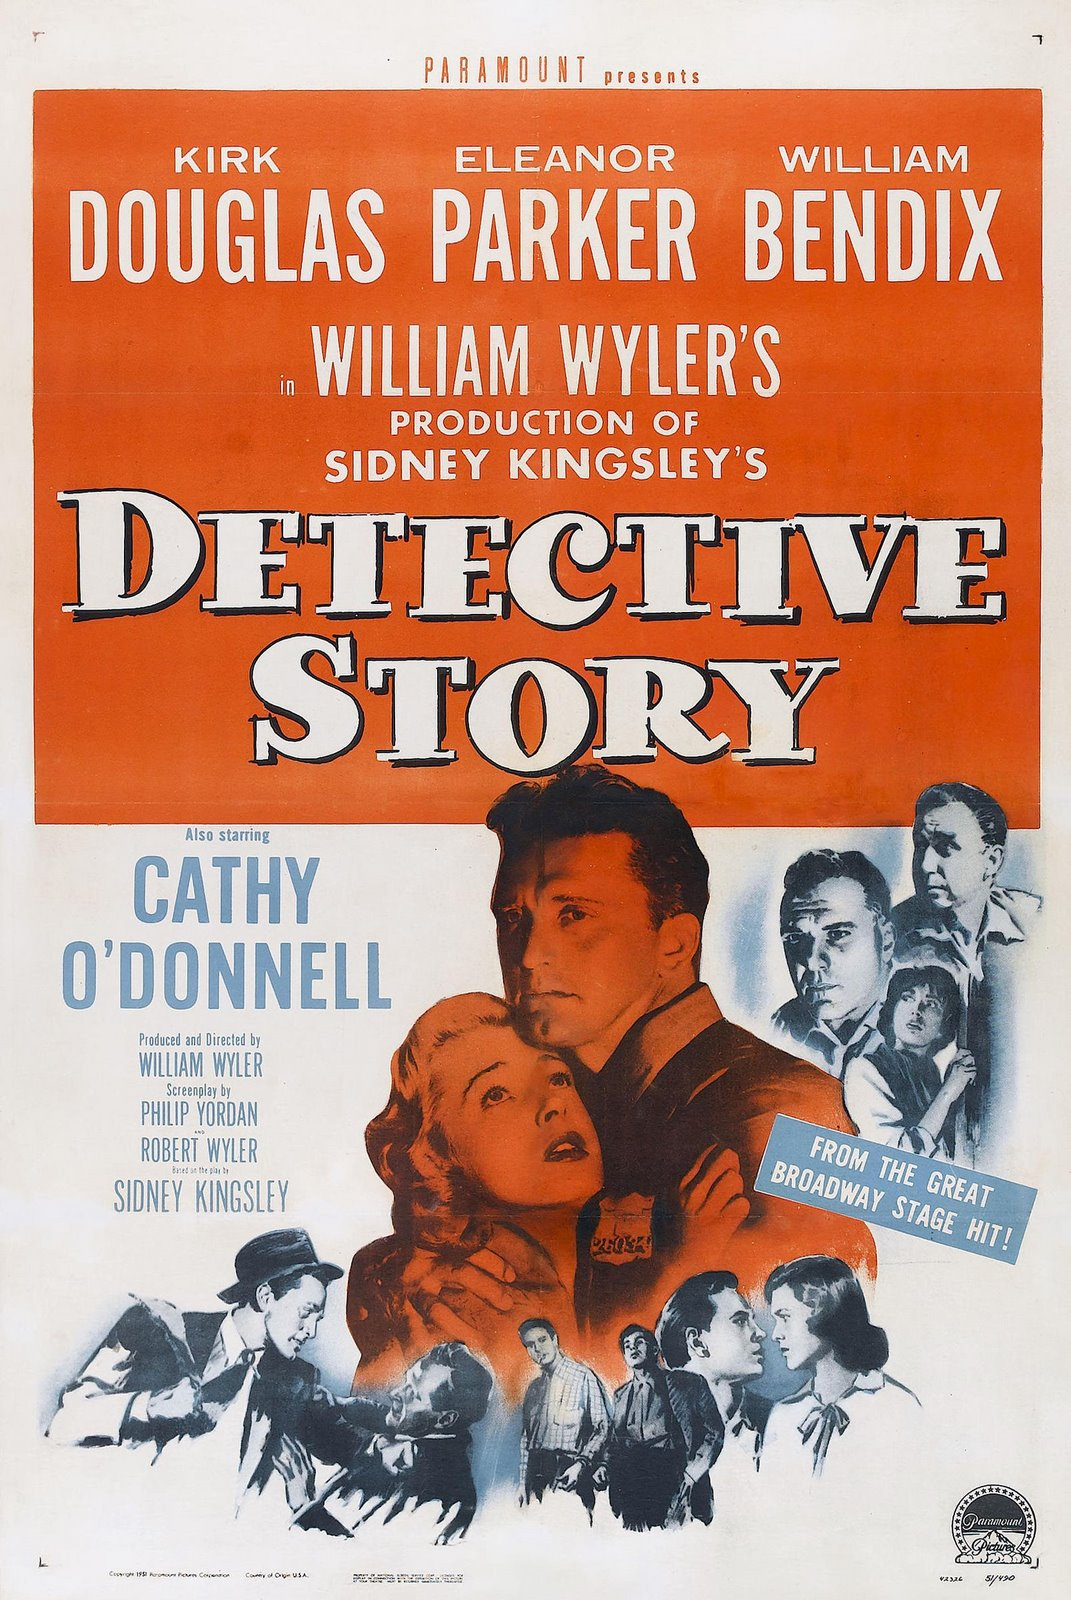 Image result for DETECTIVE STORY 1951 movie